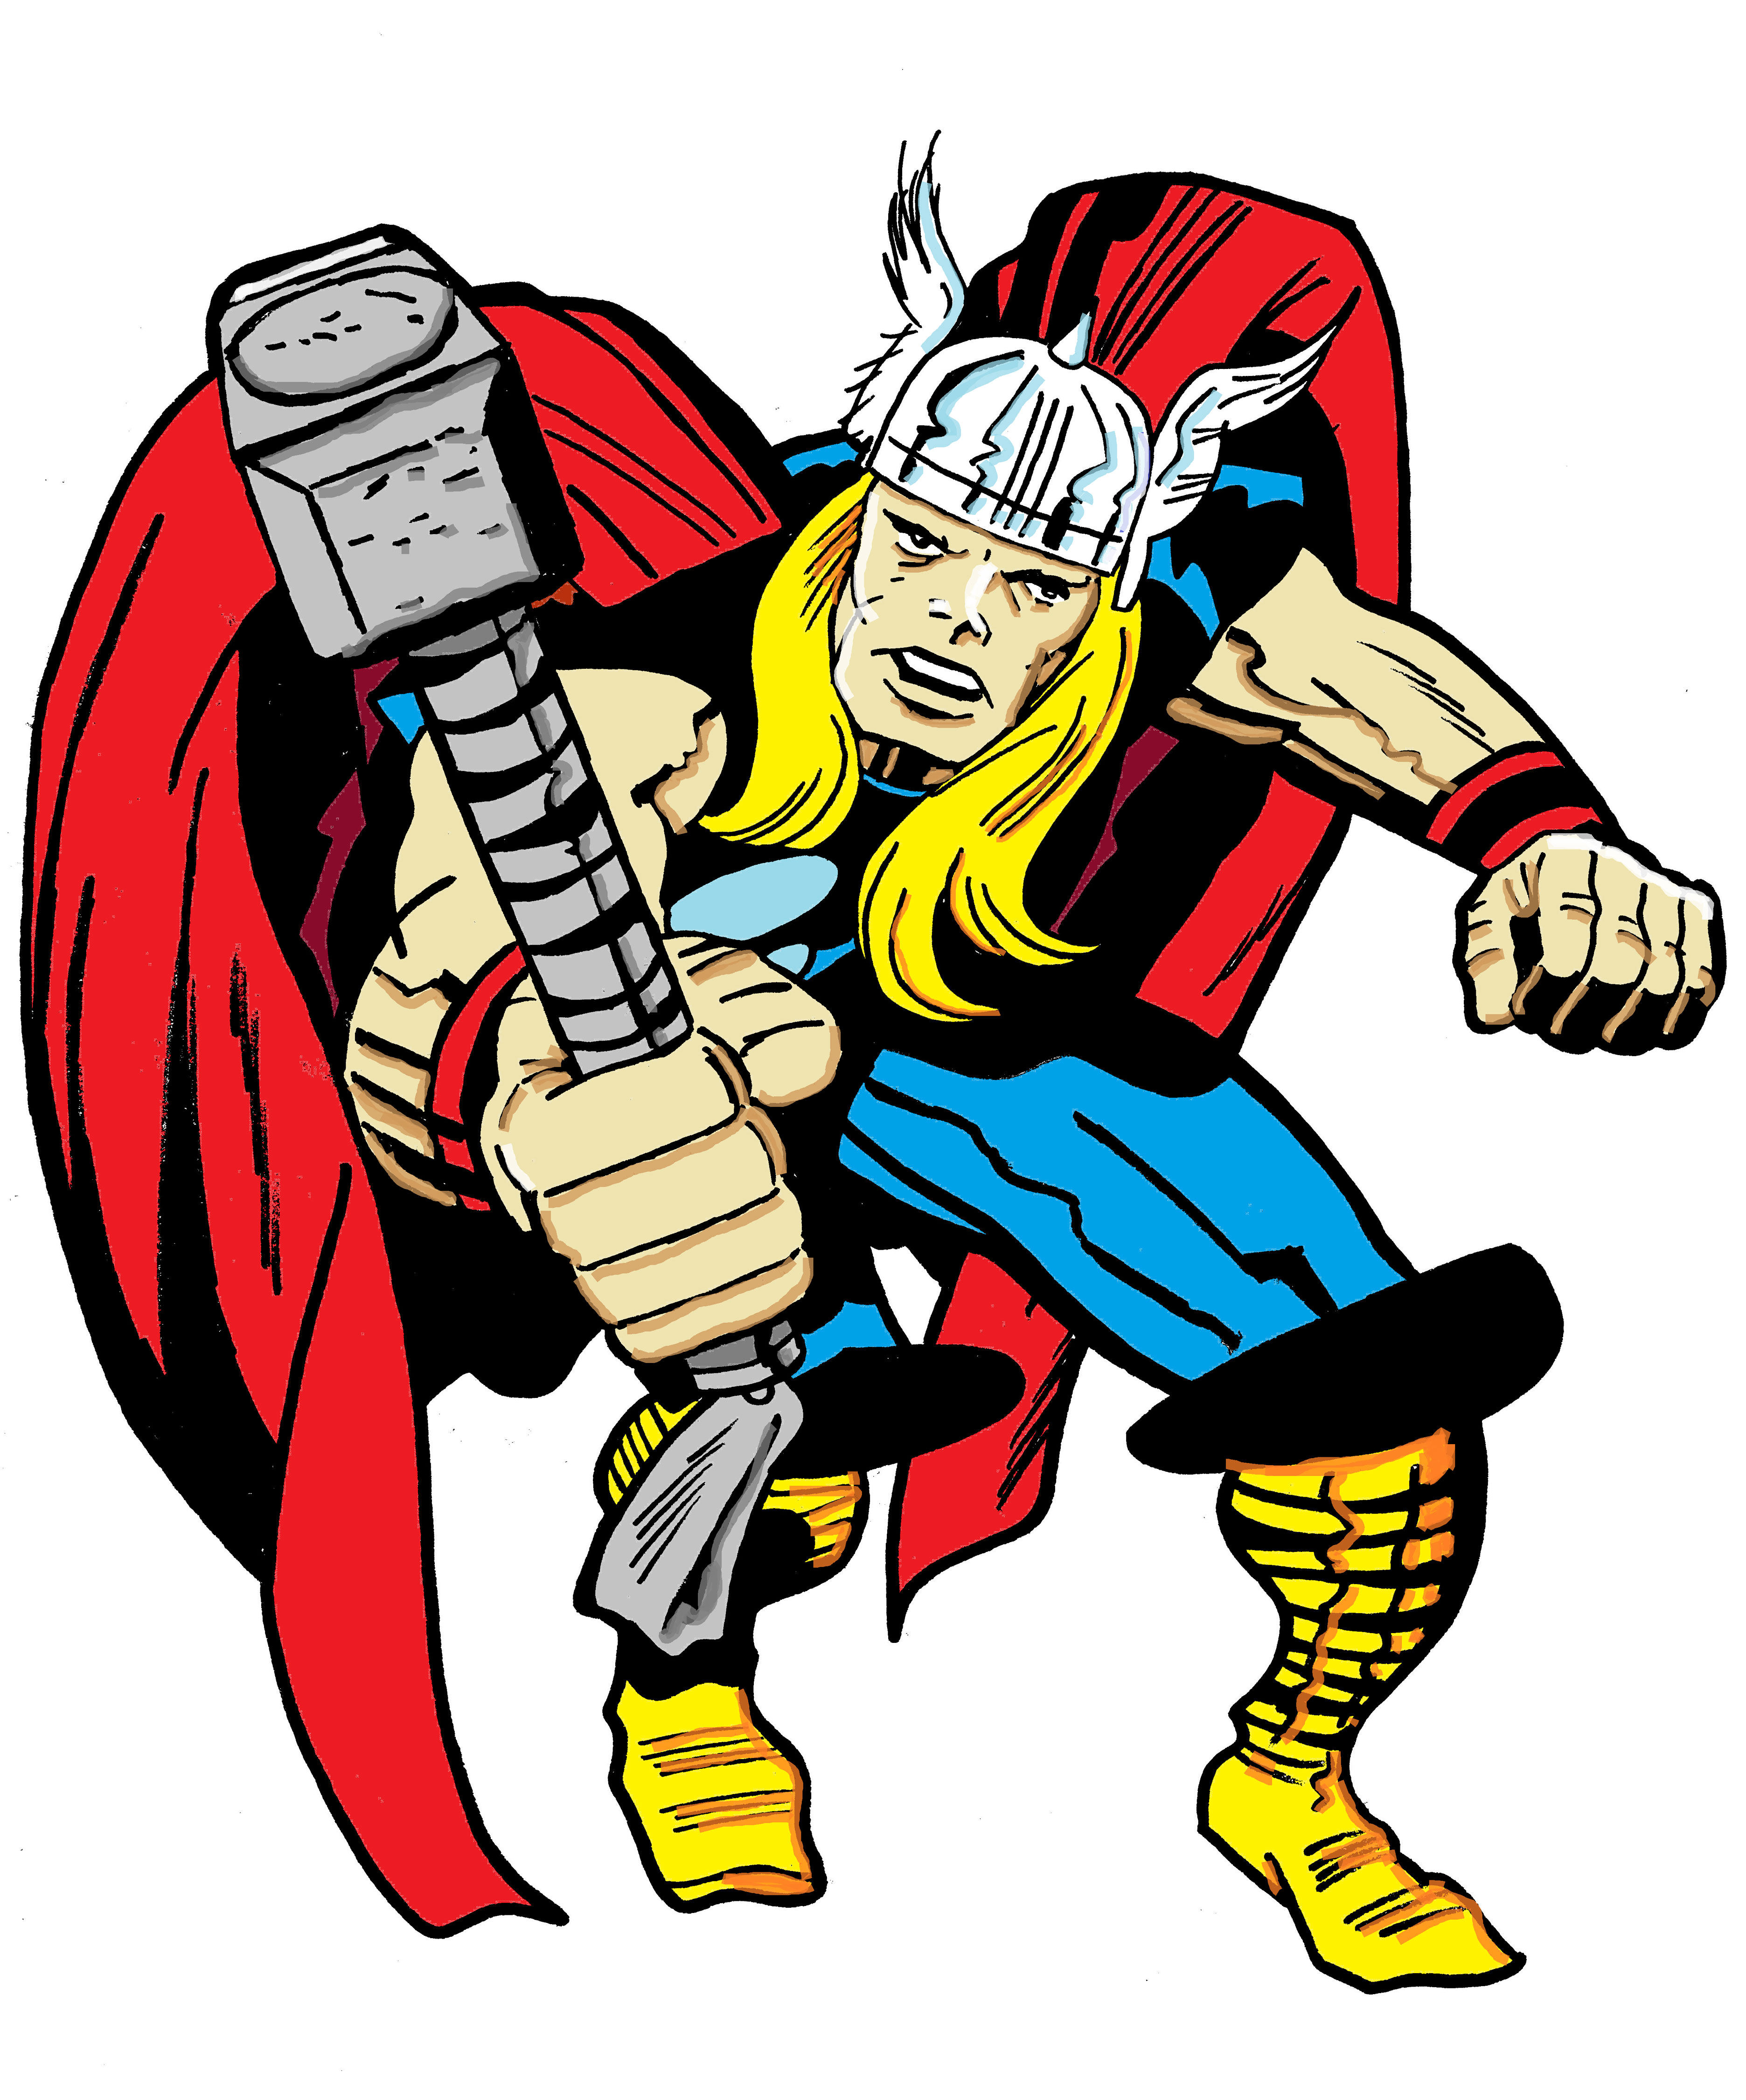 thor kirby vision